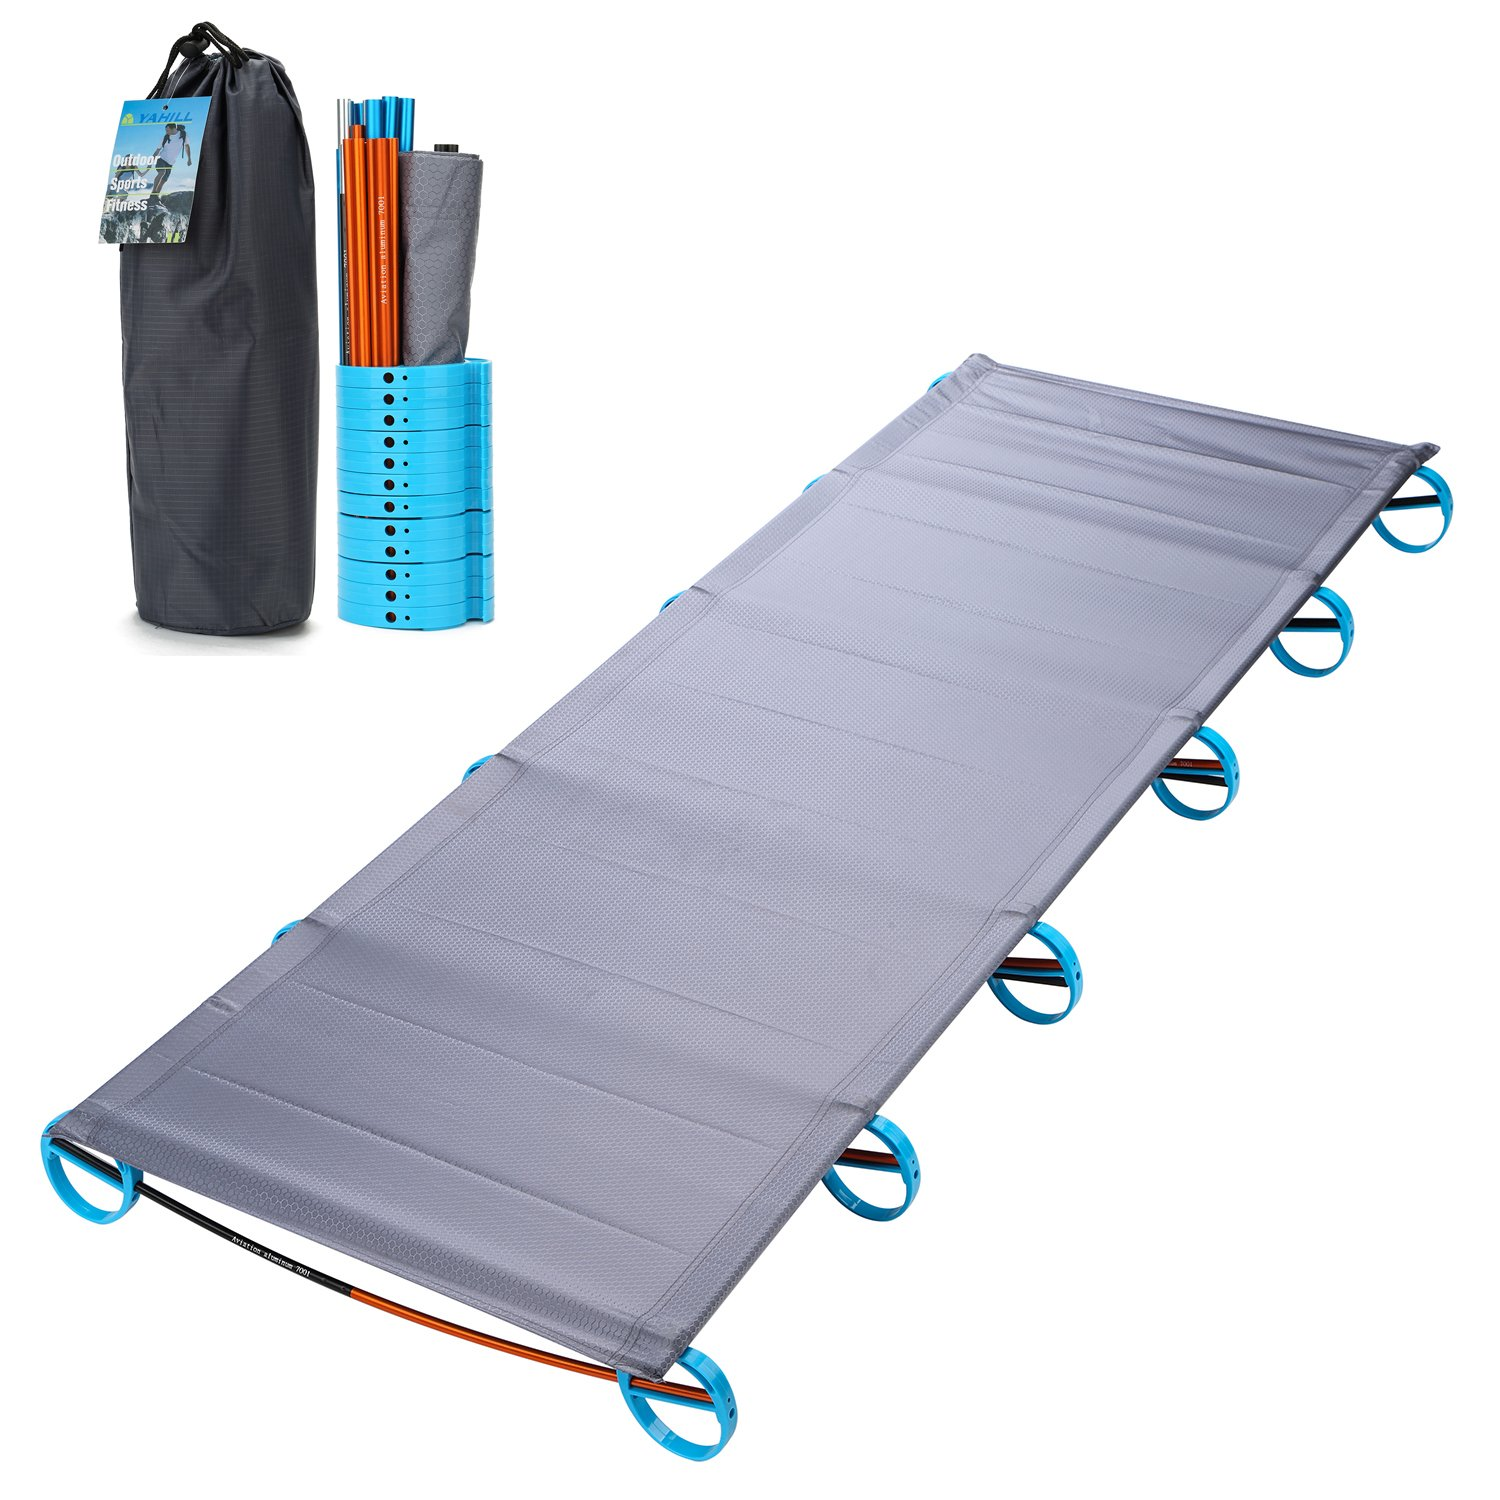 YAHILL Ultralight Folding Camping Cot Sleeping Collapsible Portable Foldable Bed Aluminum Replacements for Tent Backpack, Adults Youth Outdoor Travel Hiking Fishing Hunting (Grey -1st Generation)